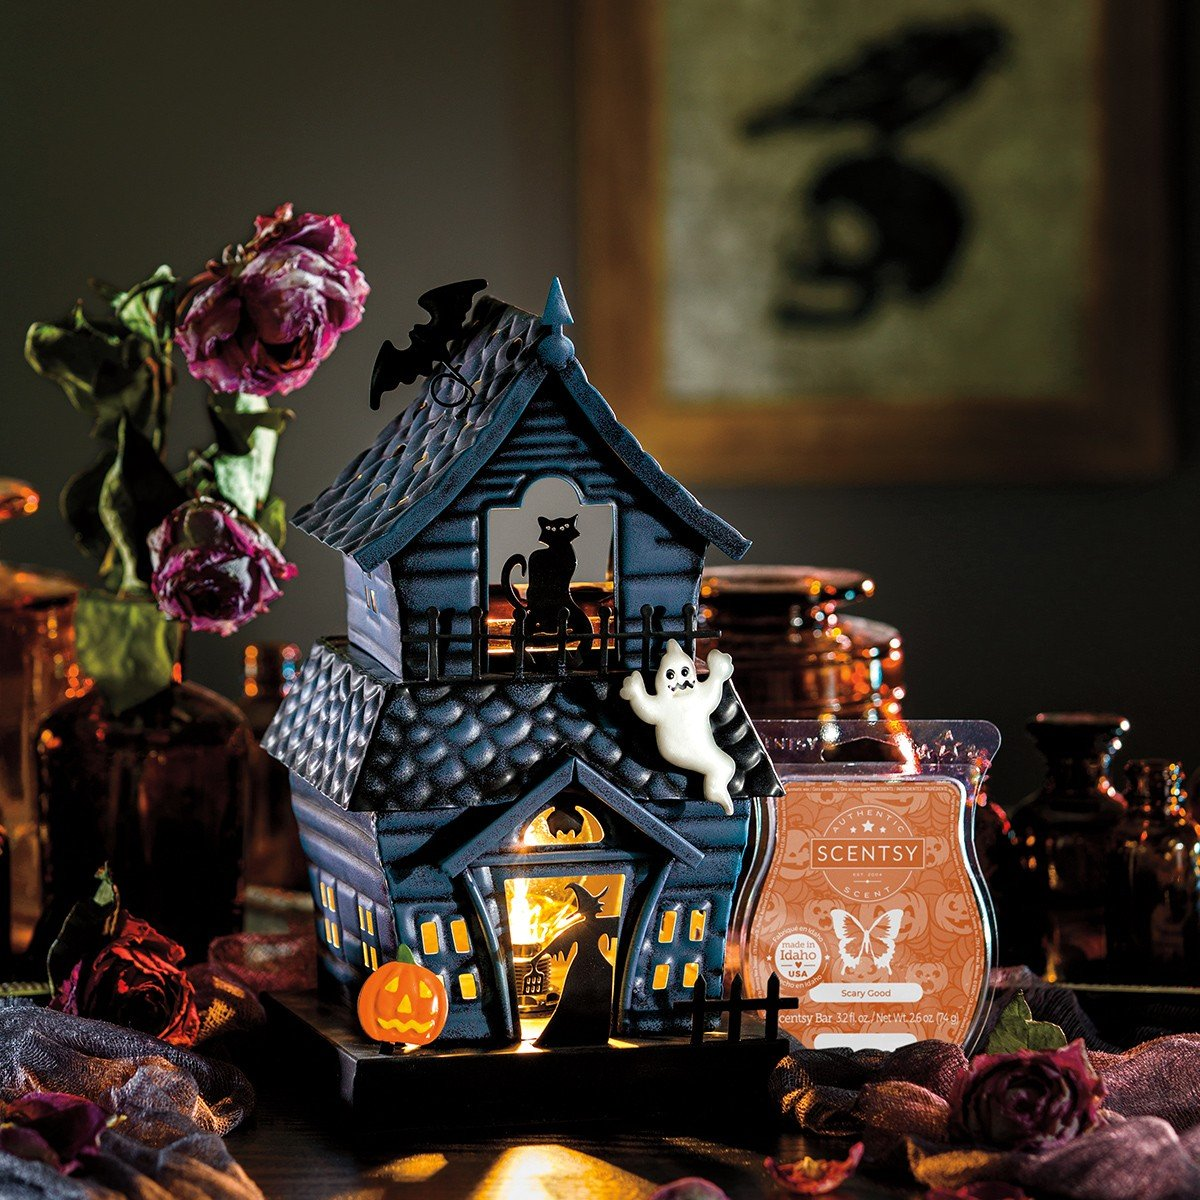 Scentsy September 2021 Warmer & Scent of the Month – Haunting Good Time Warmer & Scary Good Fragrance